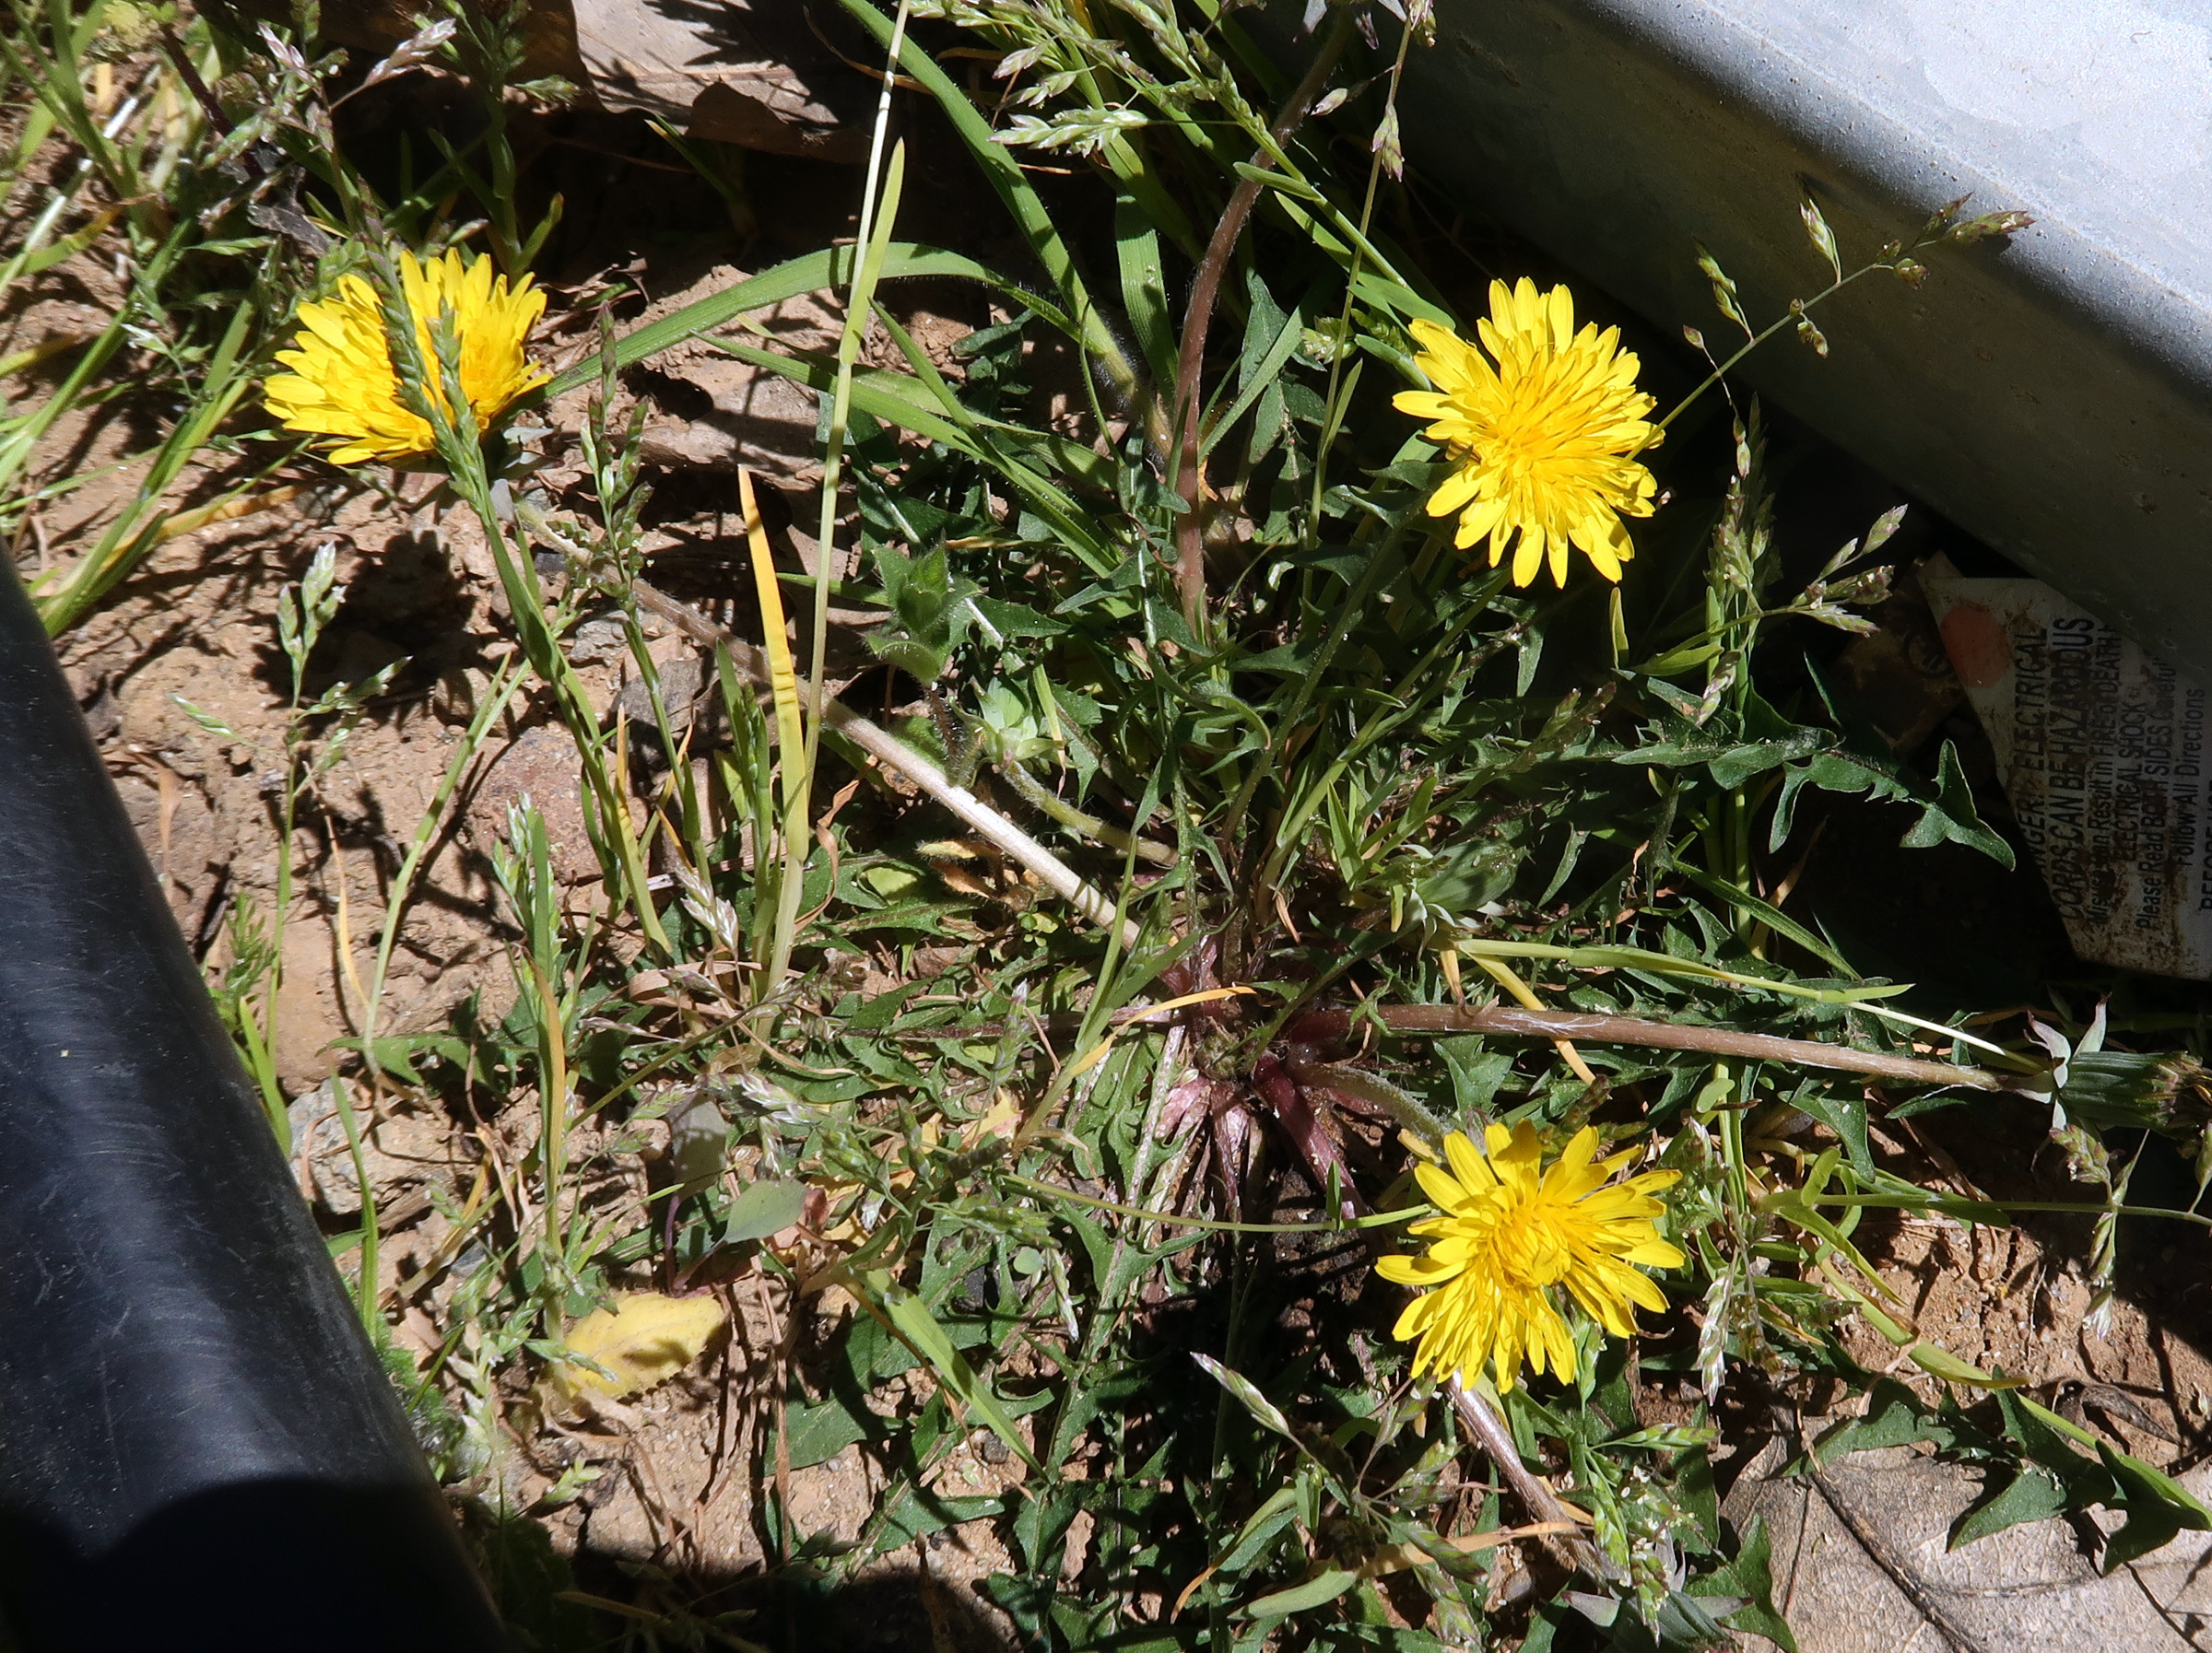 Dandelion (Taraxacum officinale), growing between an irrigation pipe and a hoophouse frame